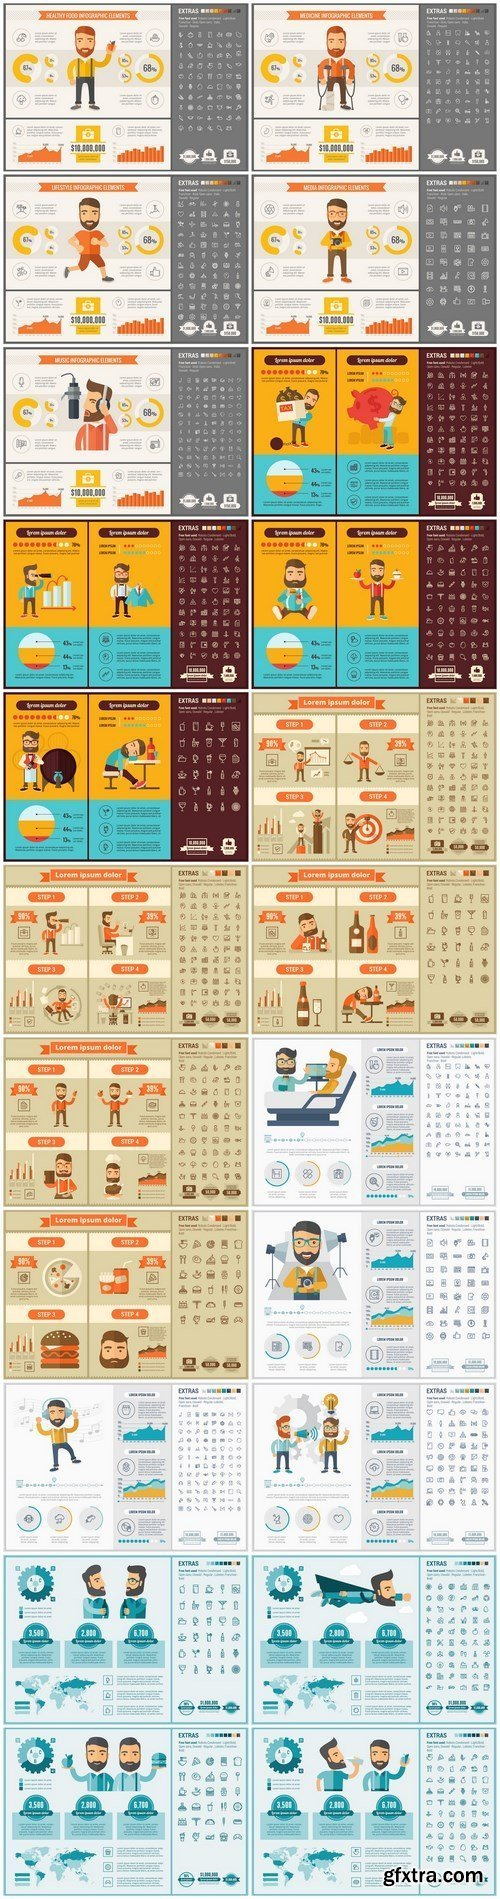 Flat Design Infographic Template - 24xEPS